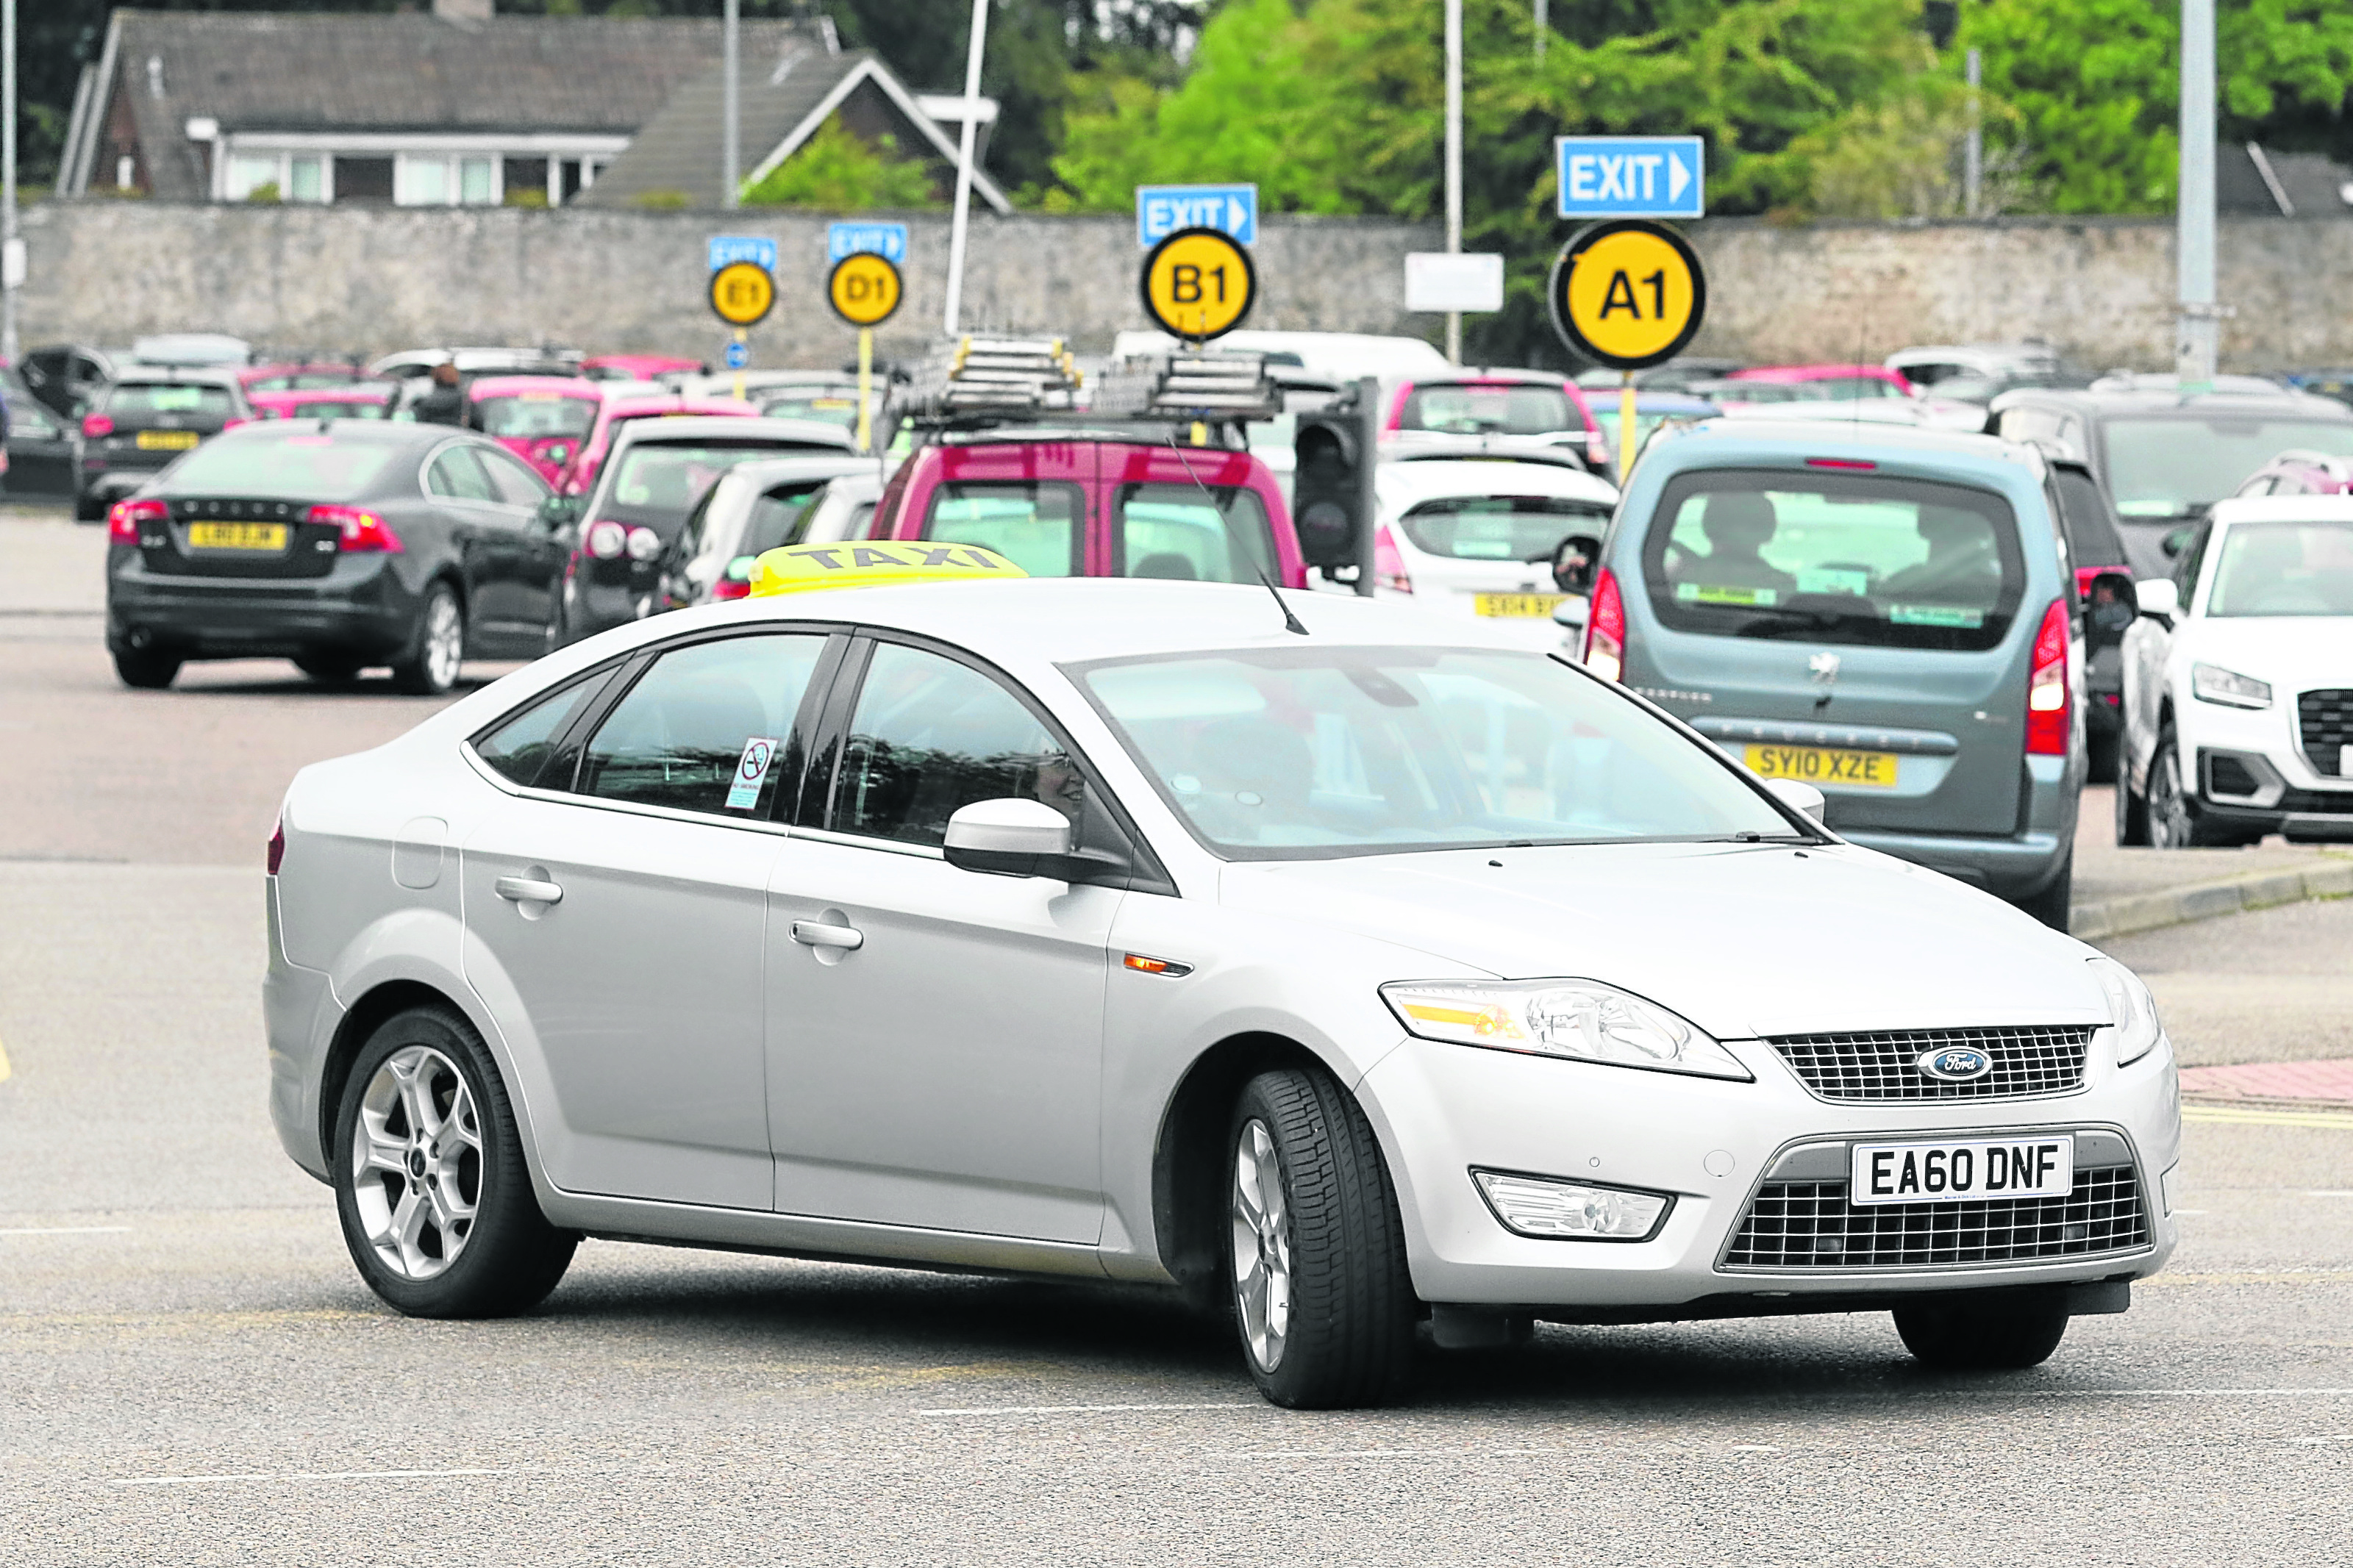 A taxi at Raigmore Hospital with busy car park in the background